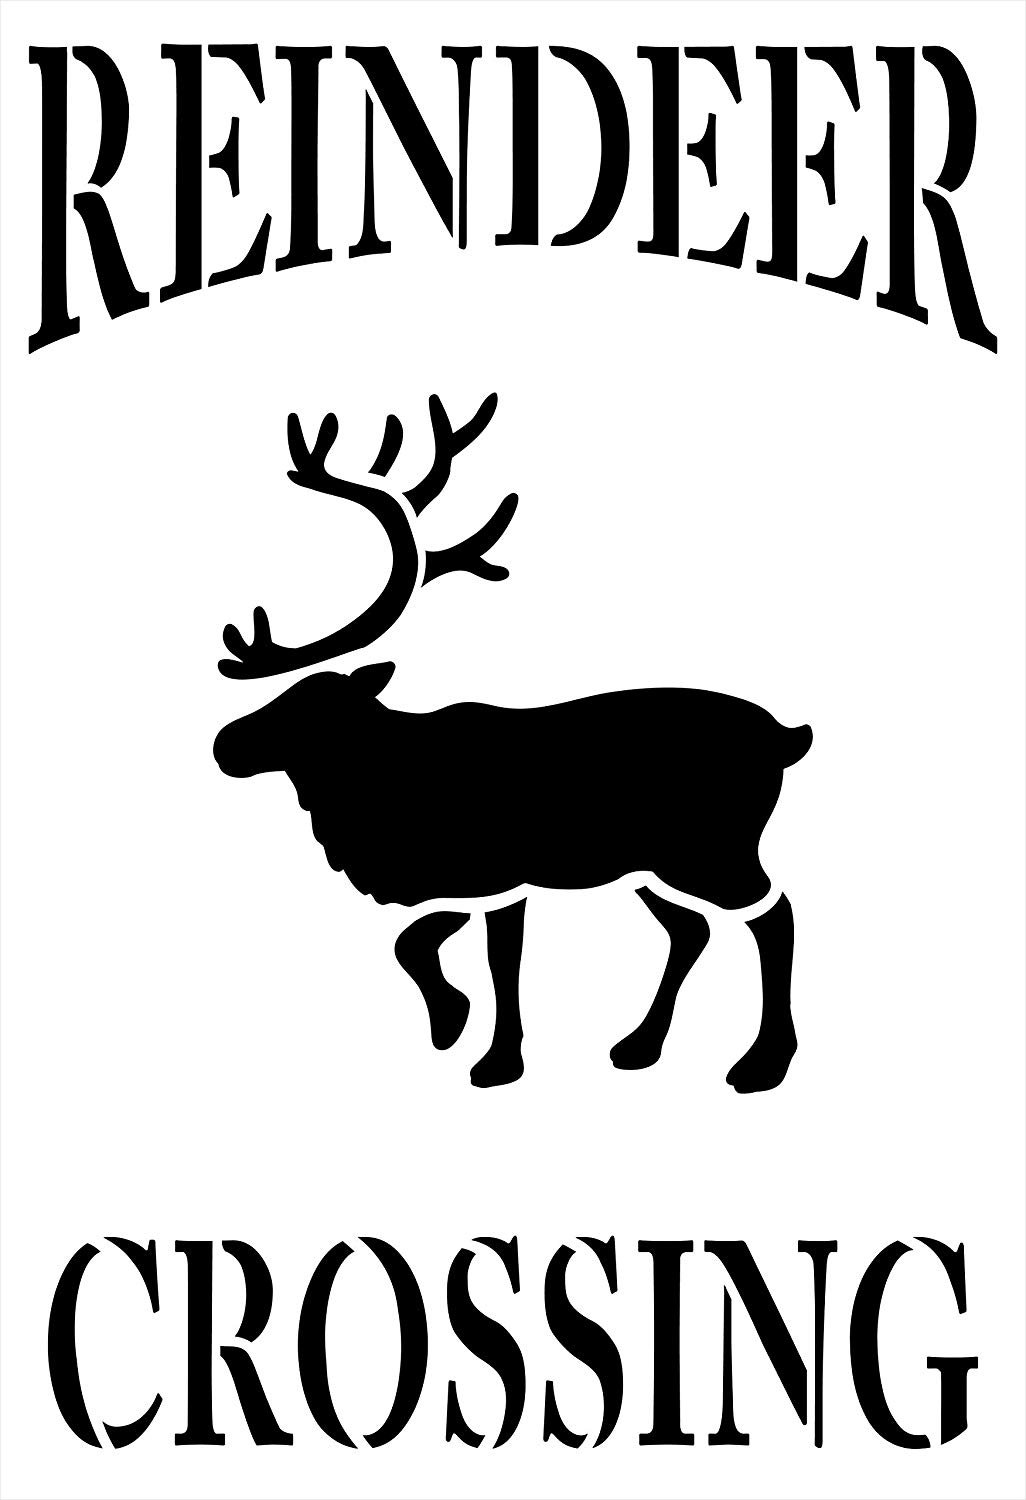 Reindeer Crossing Stencil by StudioR12 | Reusable Mylar Template Paint Wood Sign | Craft Country Christmas Holiday Home Decor Porch - Mantel | Rustic DIY Farmhouse Winter Gift Select Size